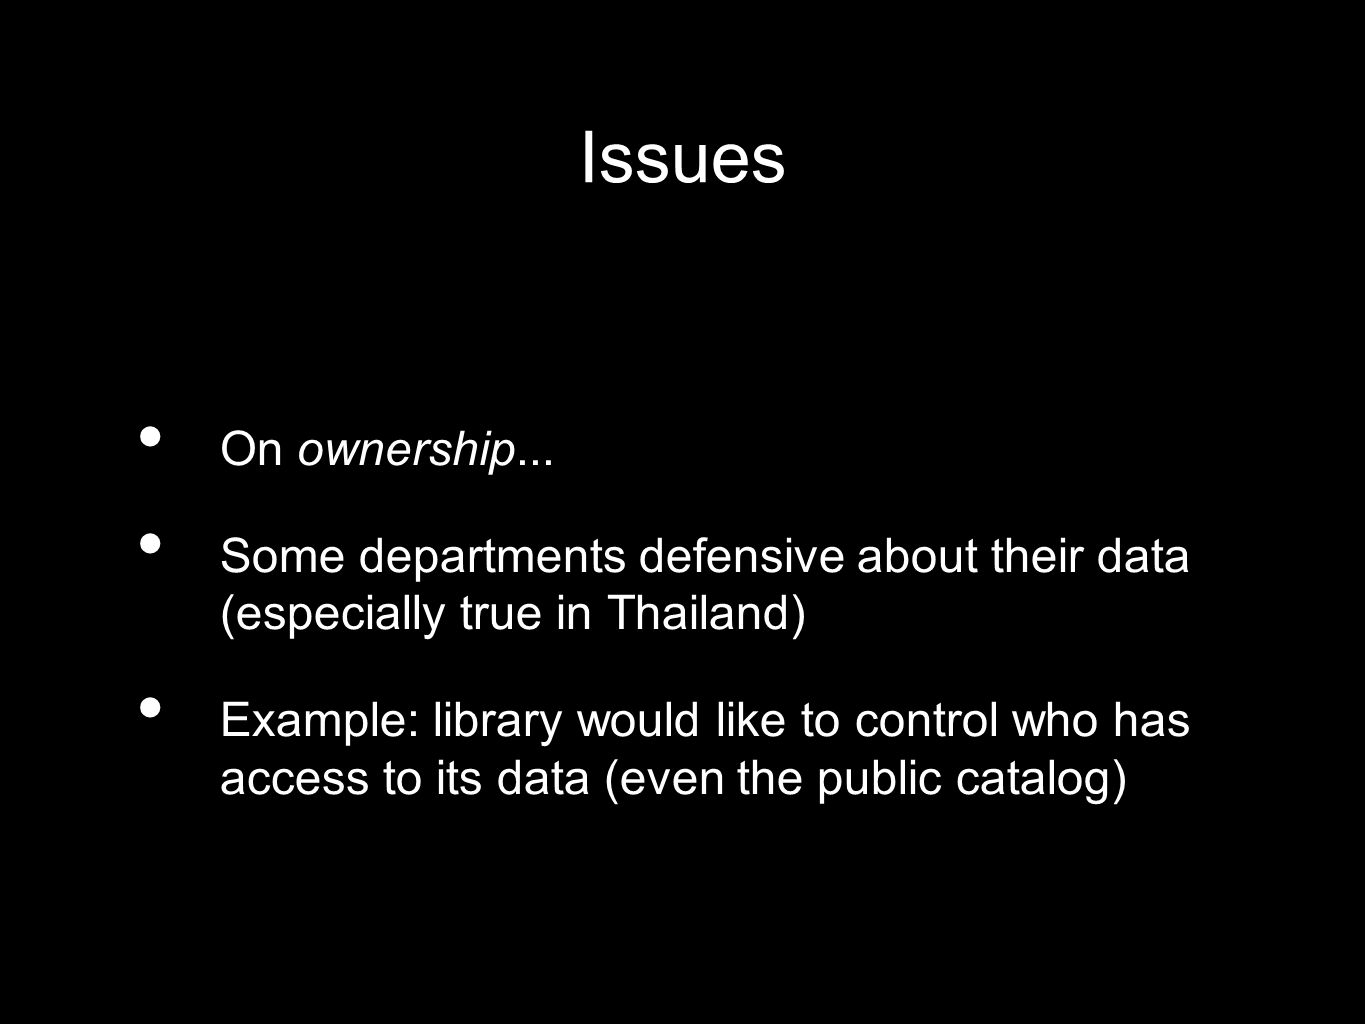 Issues On ownership... Some departments defensive about their data (especially true in Thailand) Example: library would like to control who has access